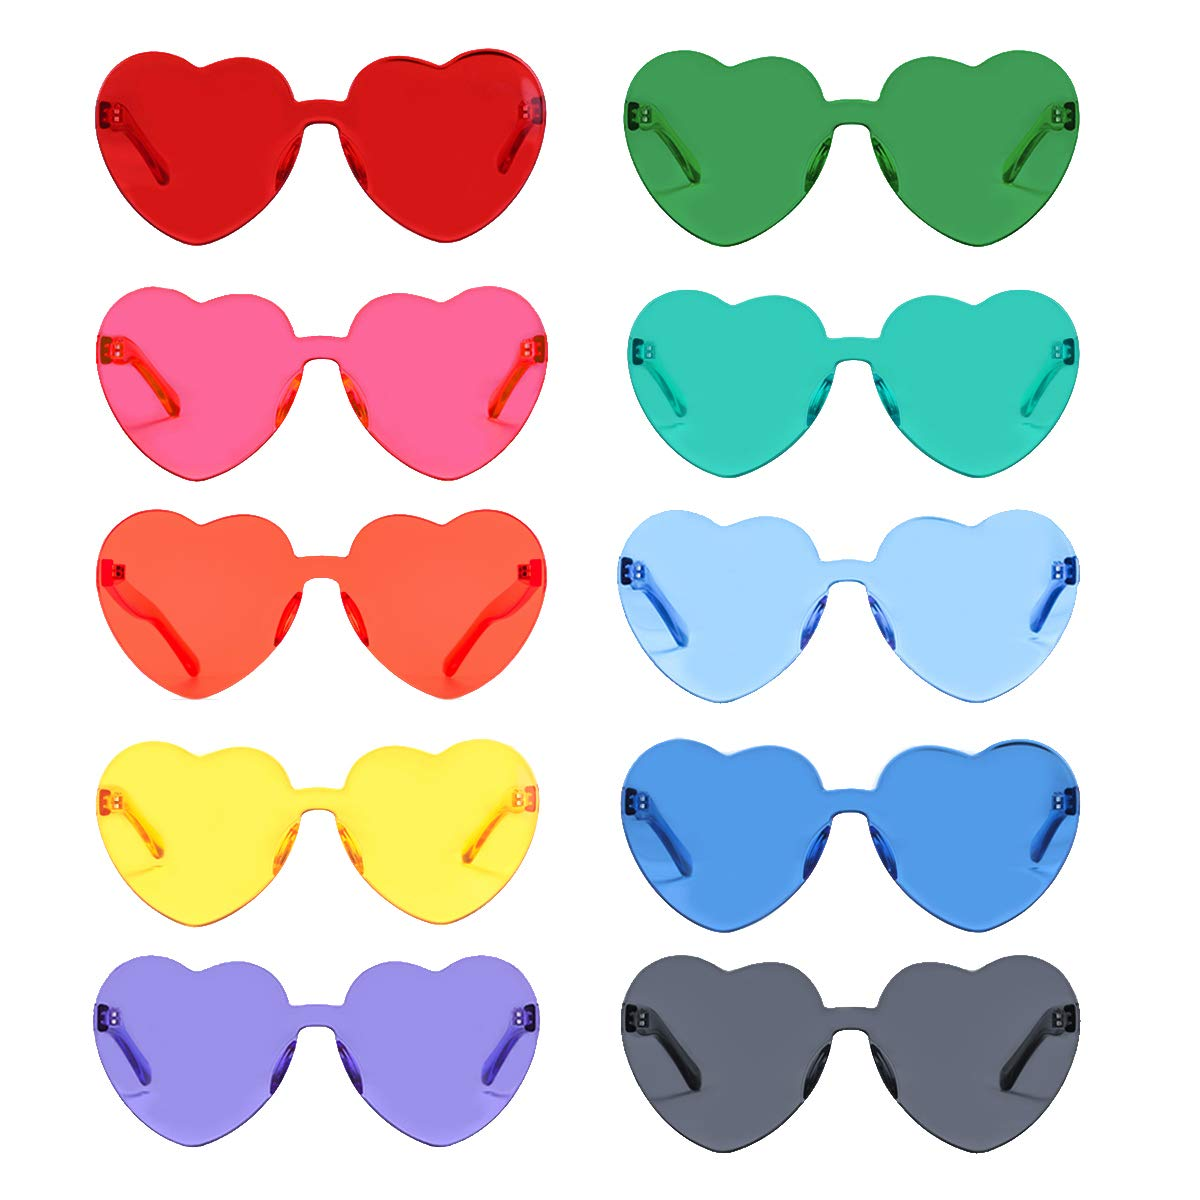 c8bd4dce1527 One Piece Heart Shaped Rimless Sunglasses Transparent Candy Color Eyewear  (10 Pack) by RTBOFY